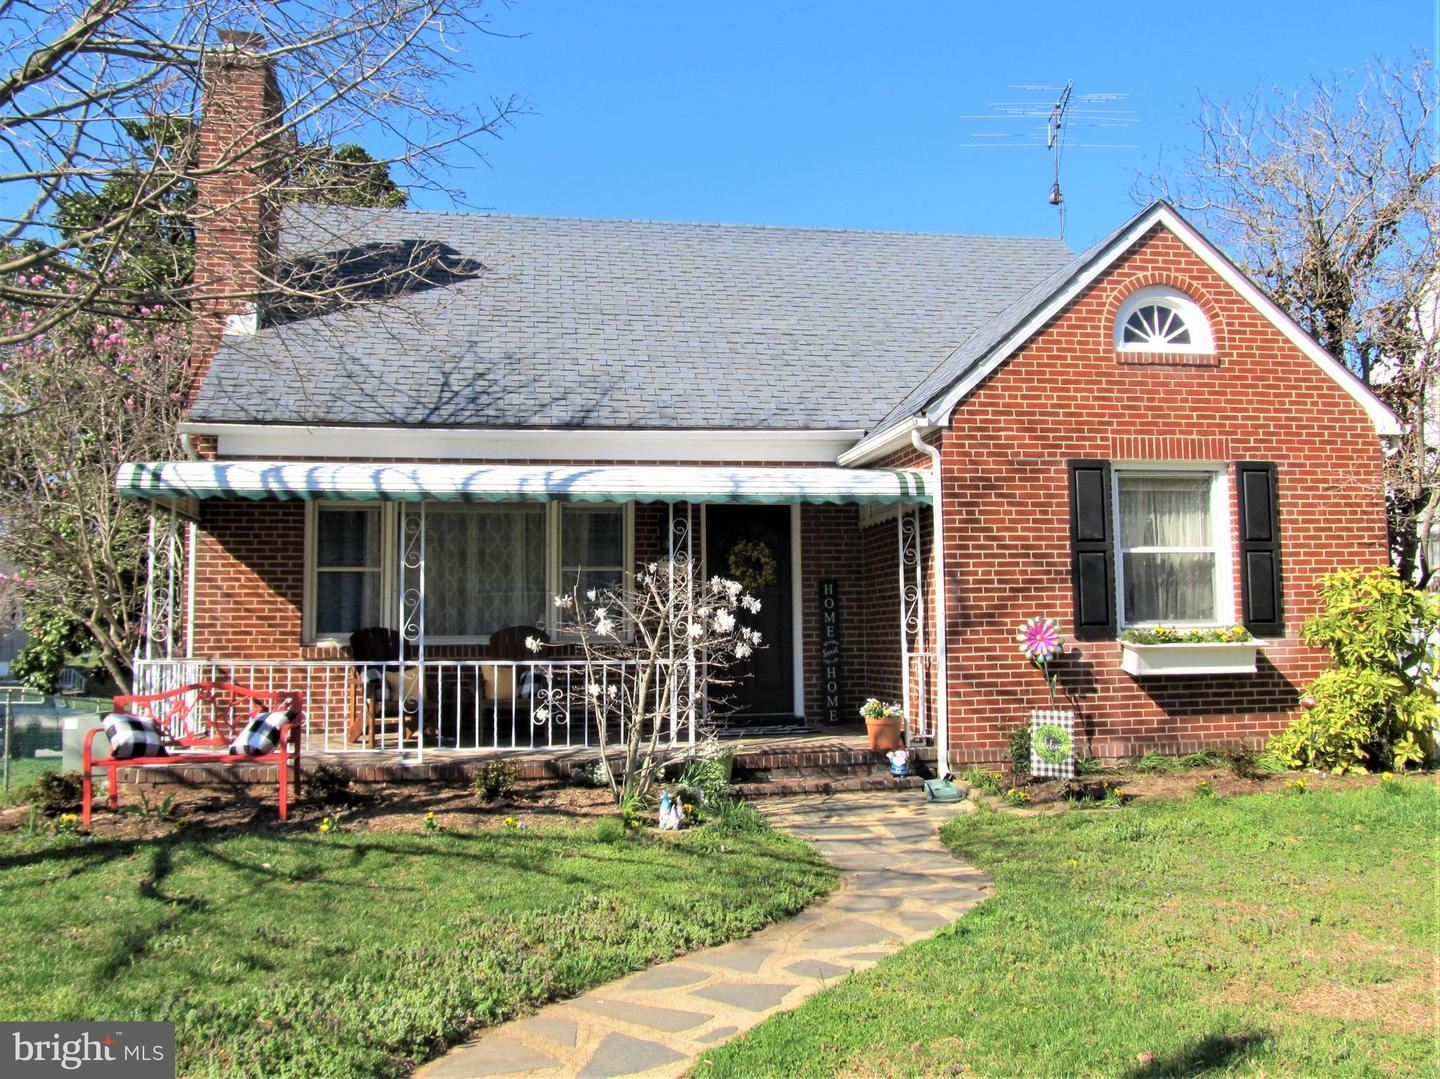 302 ORCHARD AVE, Baltimore, MD 21225 - MLS#: MDAA464588